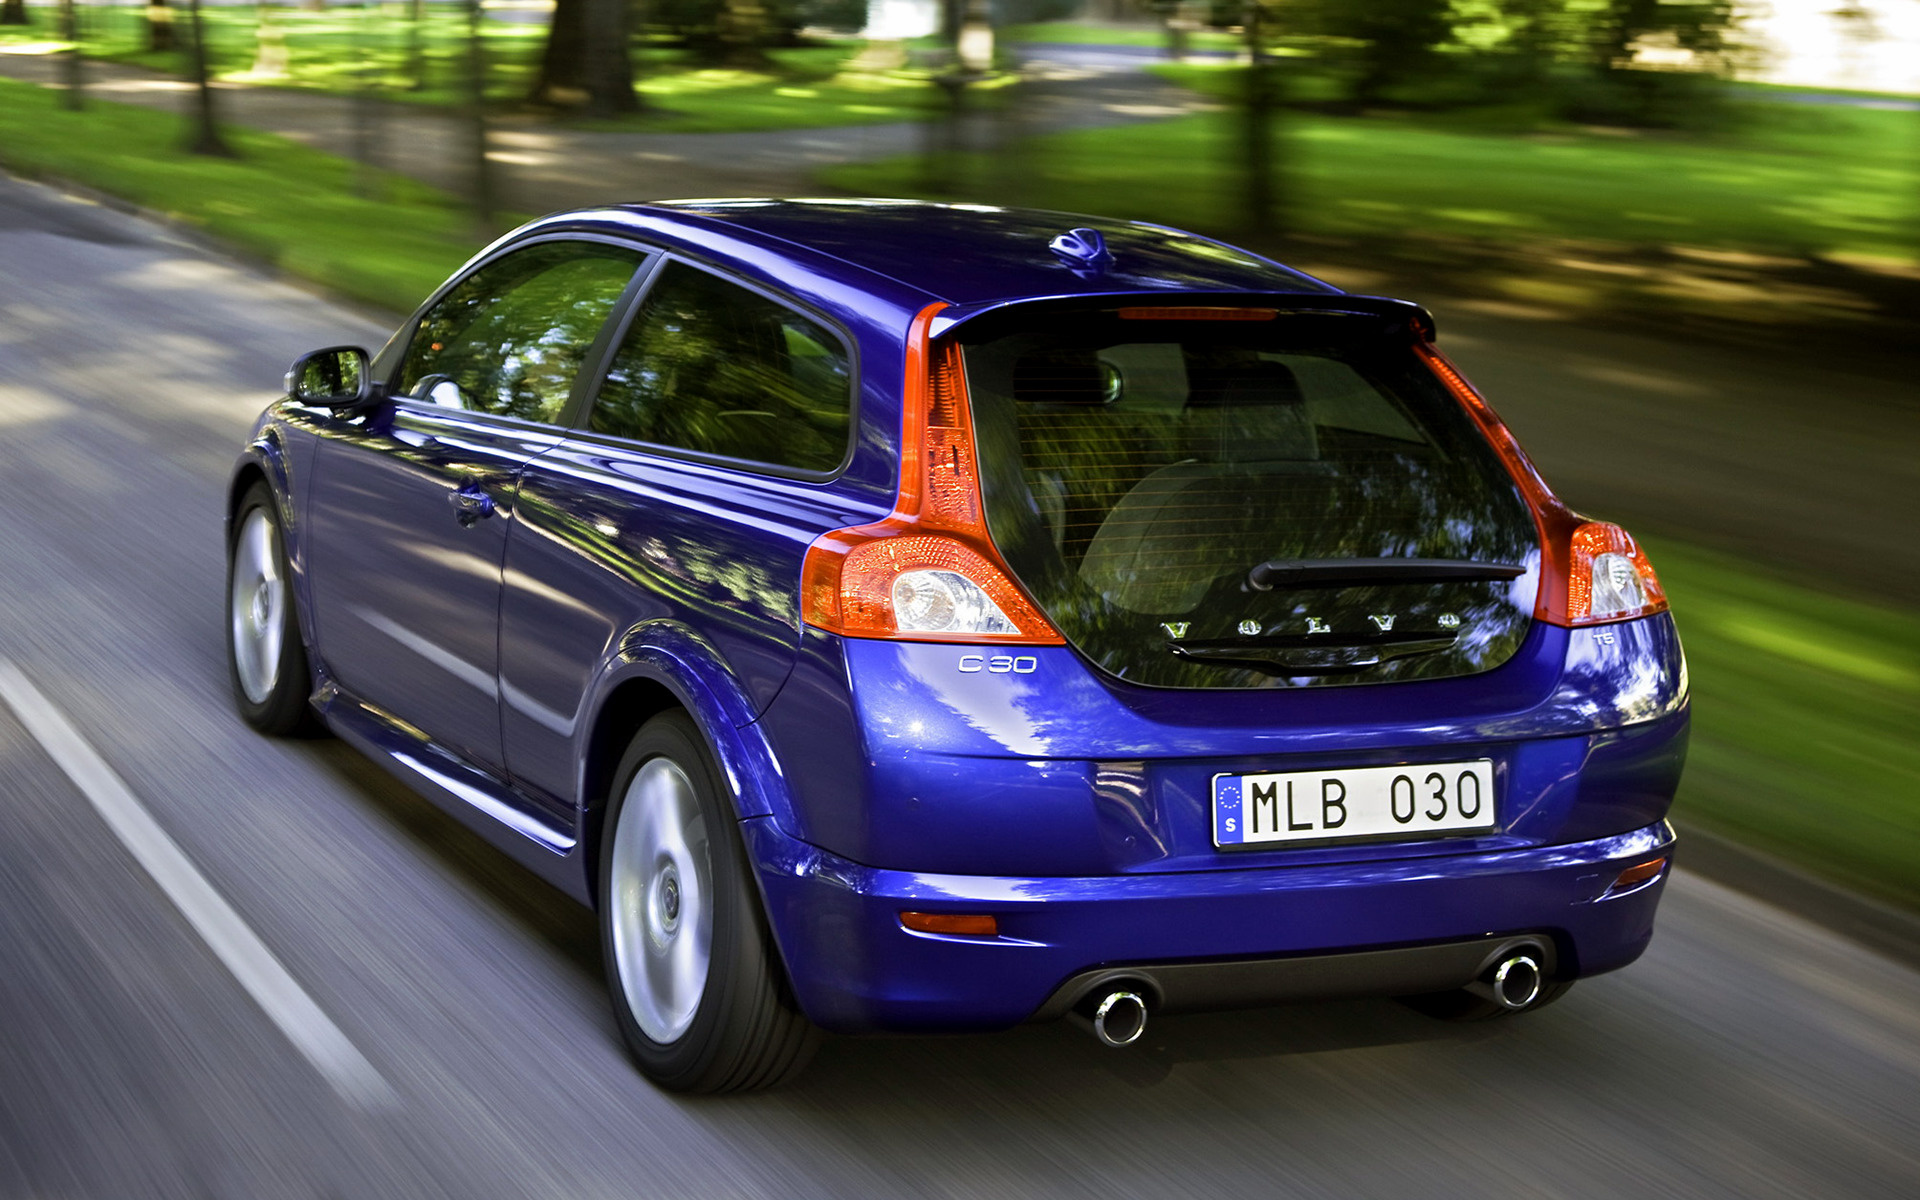 Volvo C30 R-Design (2008) Wallpapers and HD Images - Car Pixel